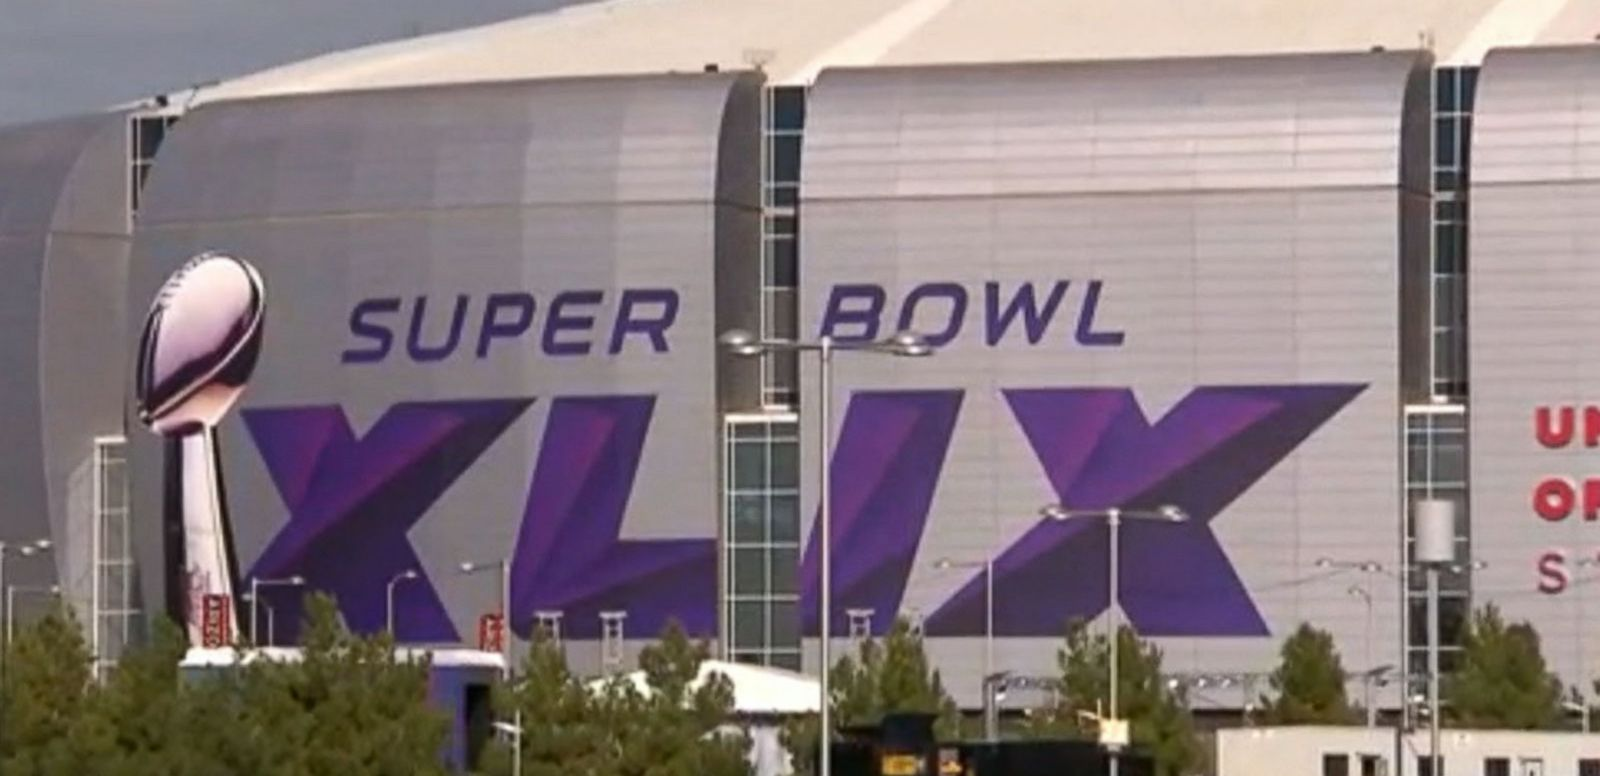 VIDEO: DHS Sec. Jeh Johnson on Super Bowl Security